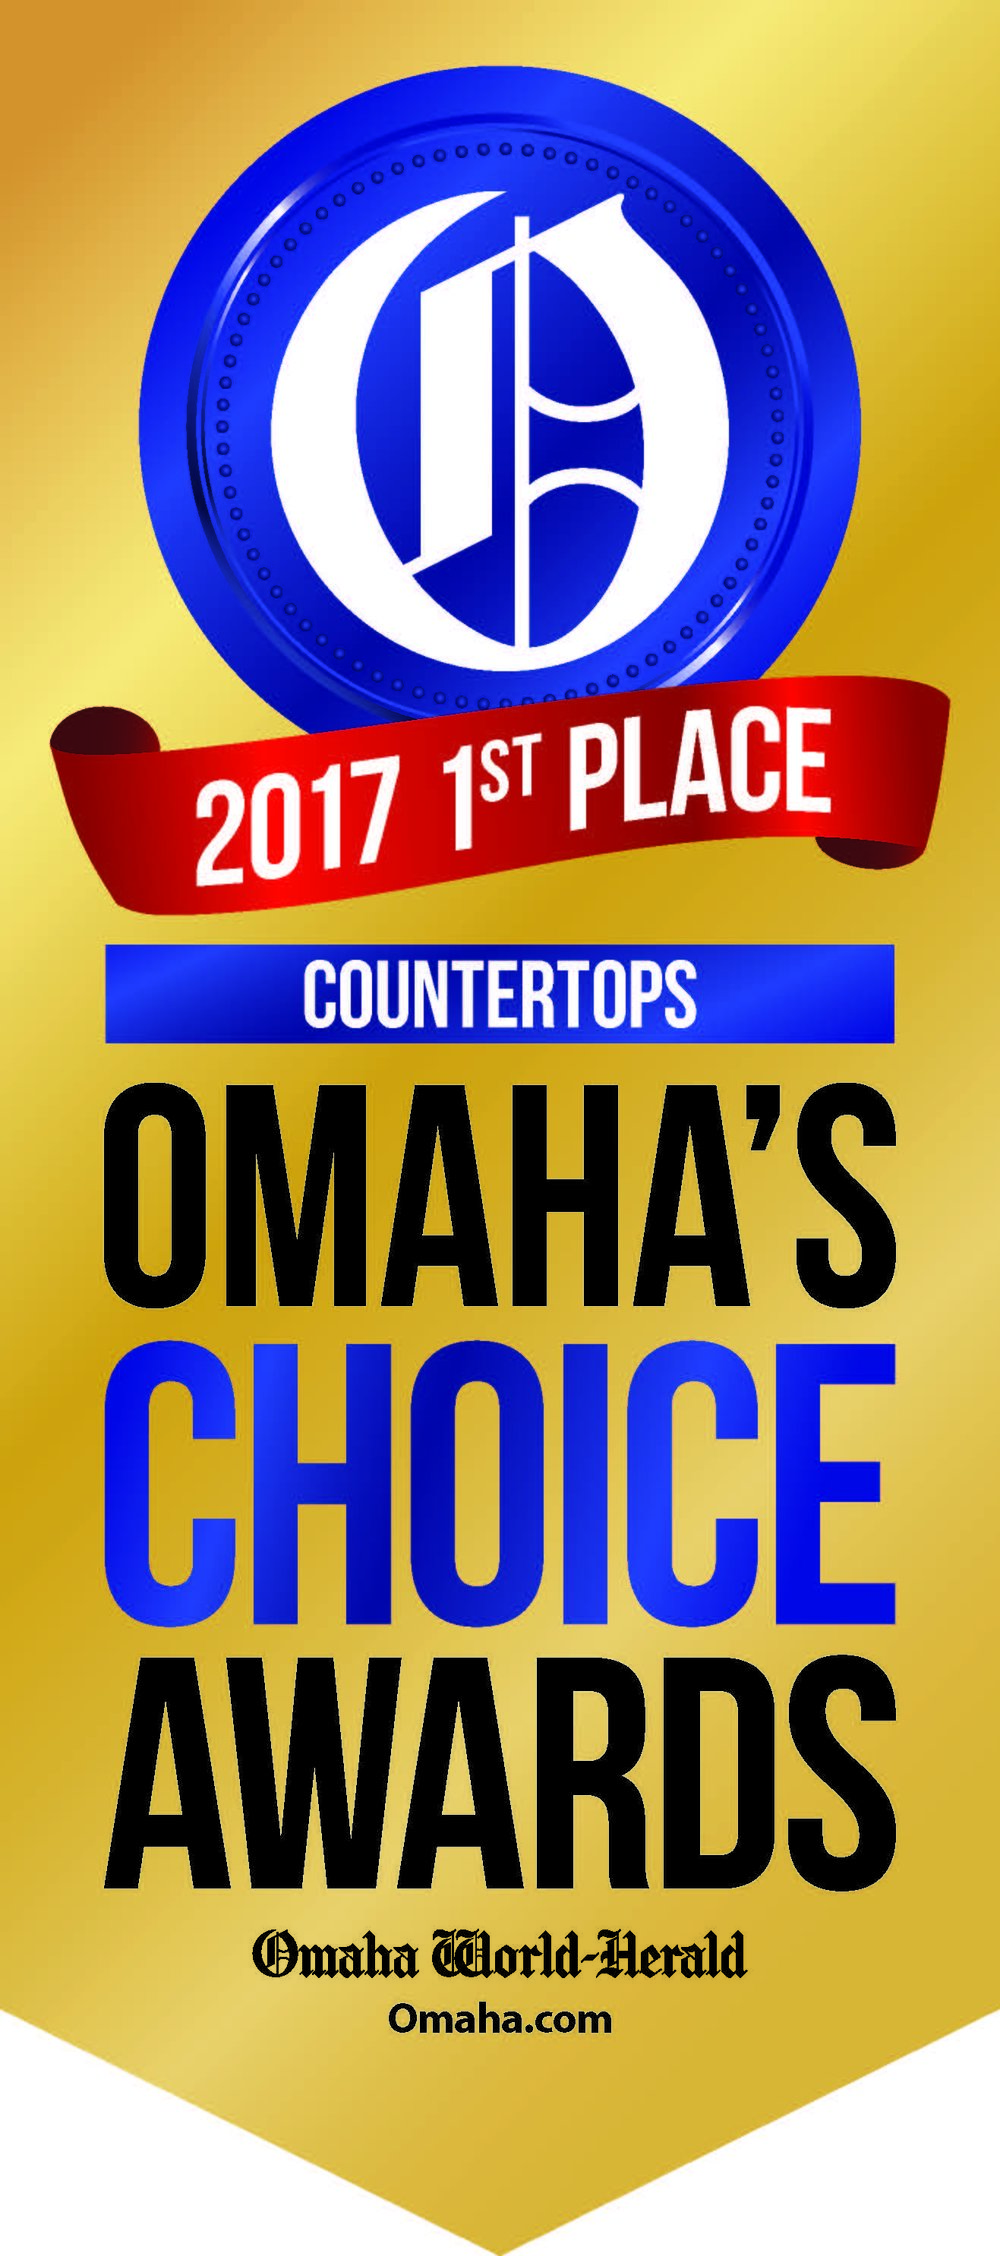 2017 Omahas Choice Awards 1st Place (Countertops).jpg